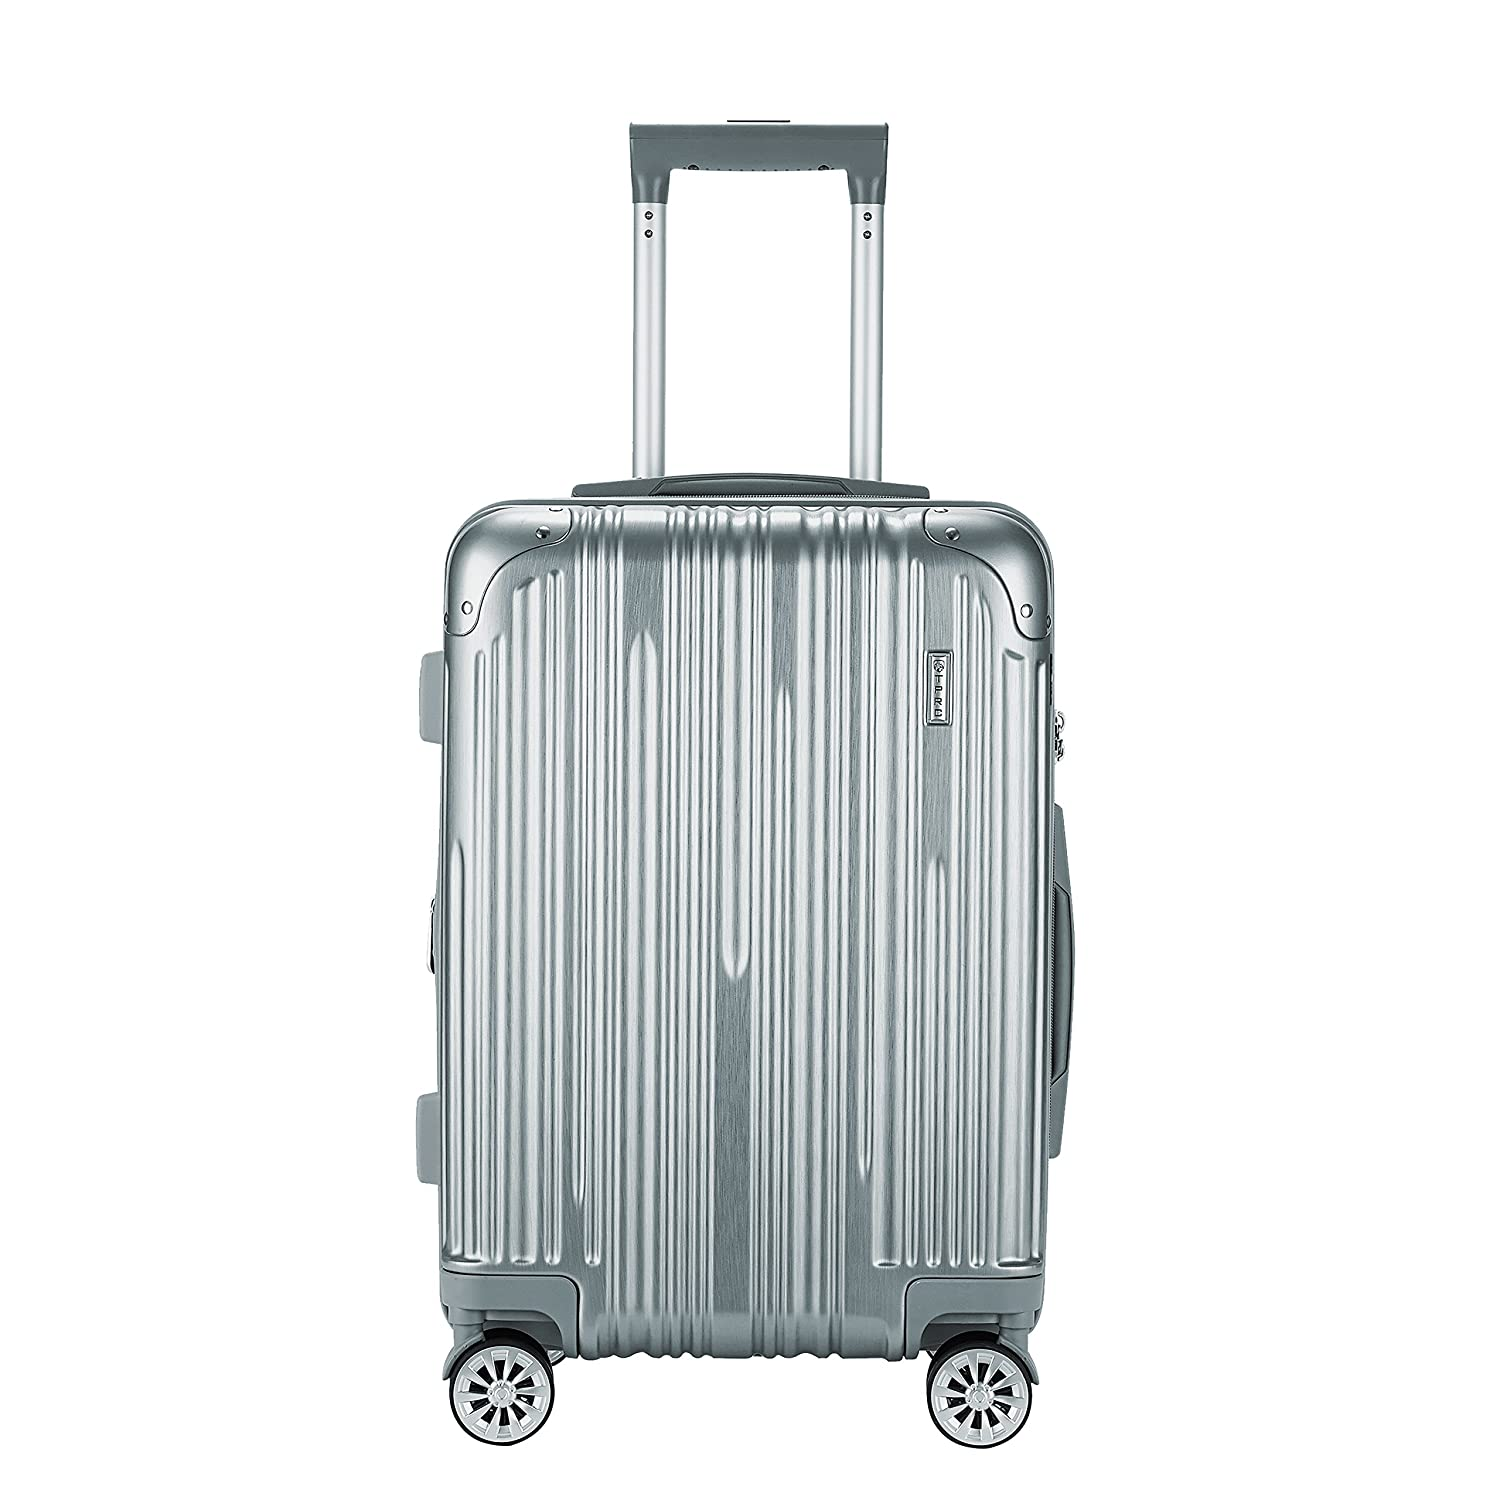 Silver Color Option and 20 Carry-On 24 Upright TPRC 3 Piece Nurmi Collection Premium 8-Wheel Luggage Set with TSA Lock System Includes 28 Suitcase